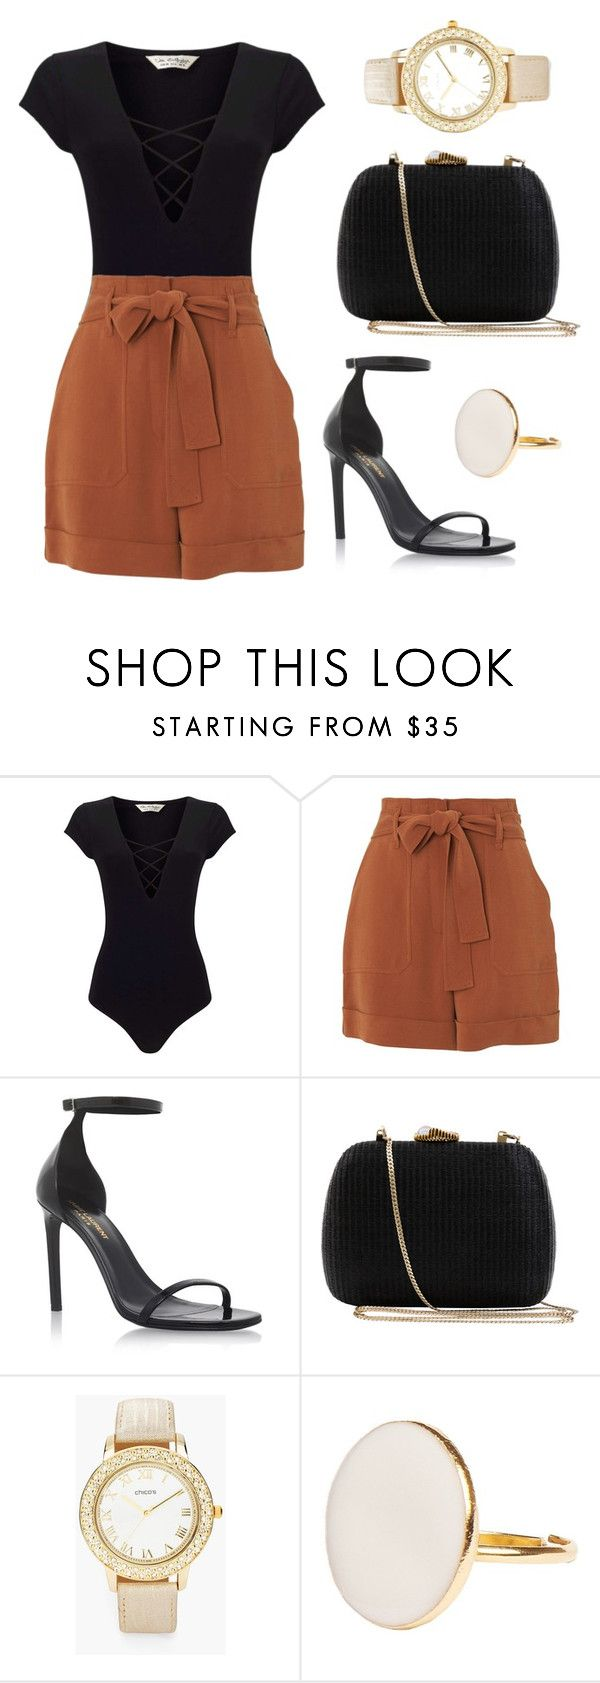 """Untitled #261"" by jasmine-abdallah on Polyvore featuring Miss Selfridge, Whistles, Yves Saint Laurent, Serpui and Chico's"